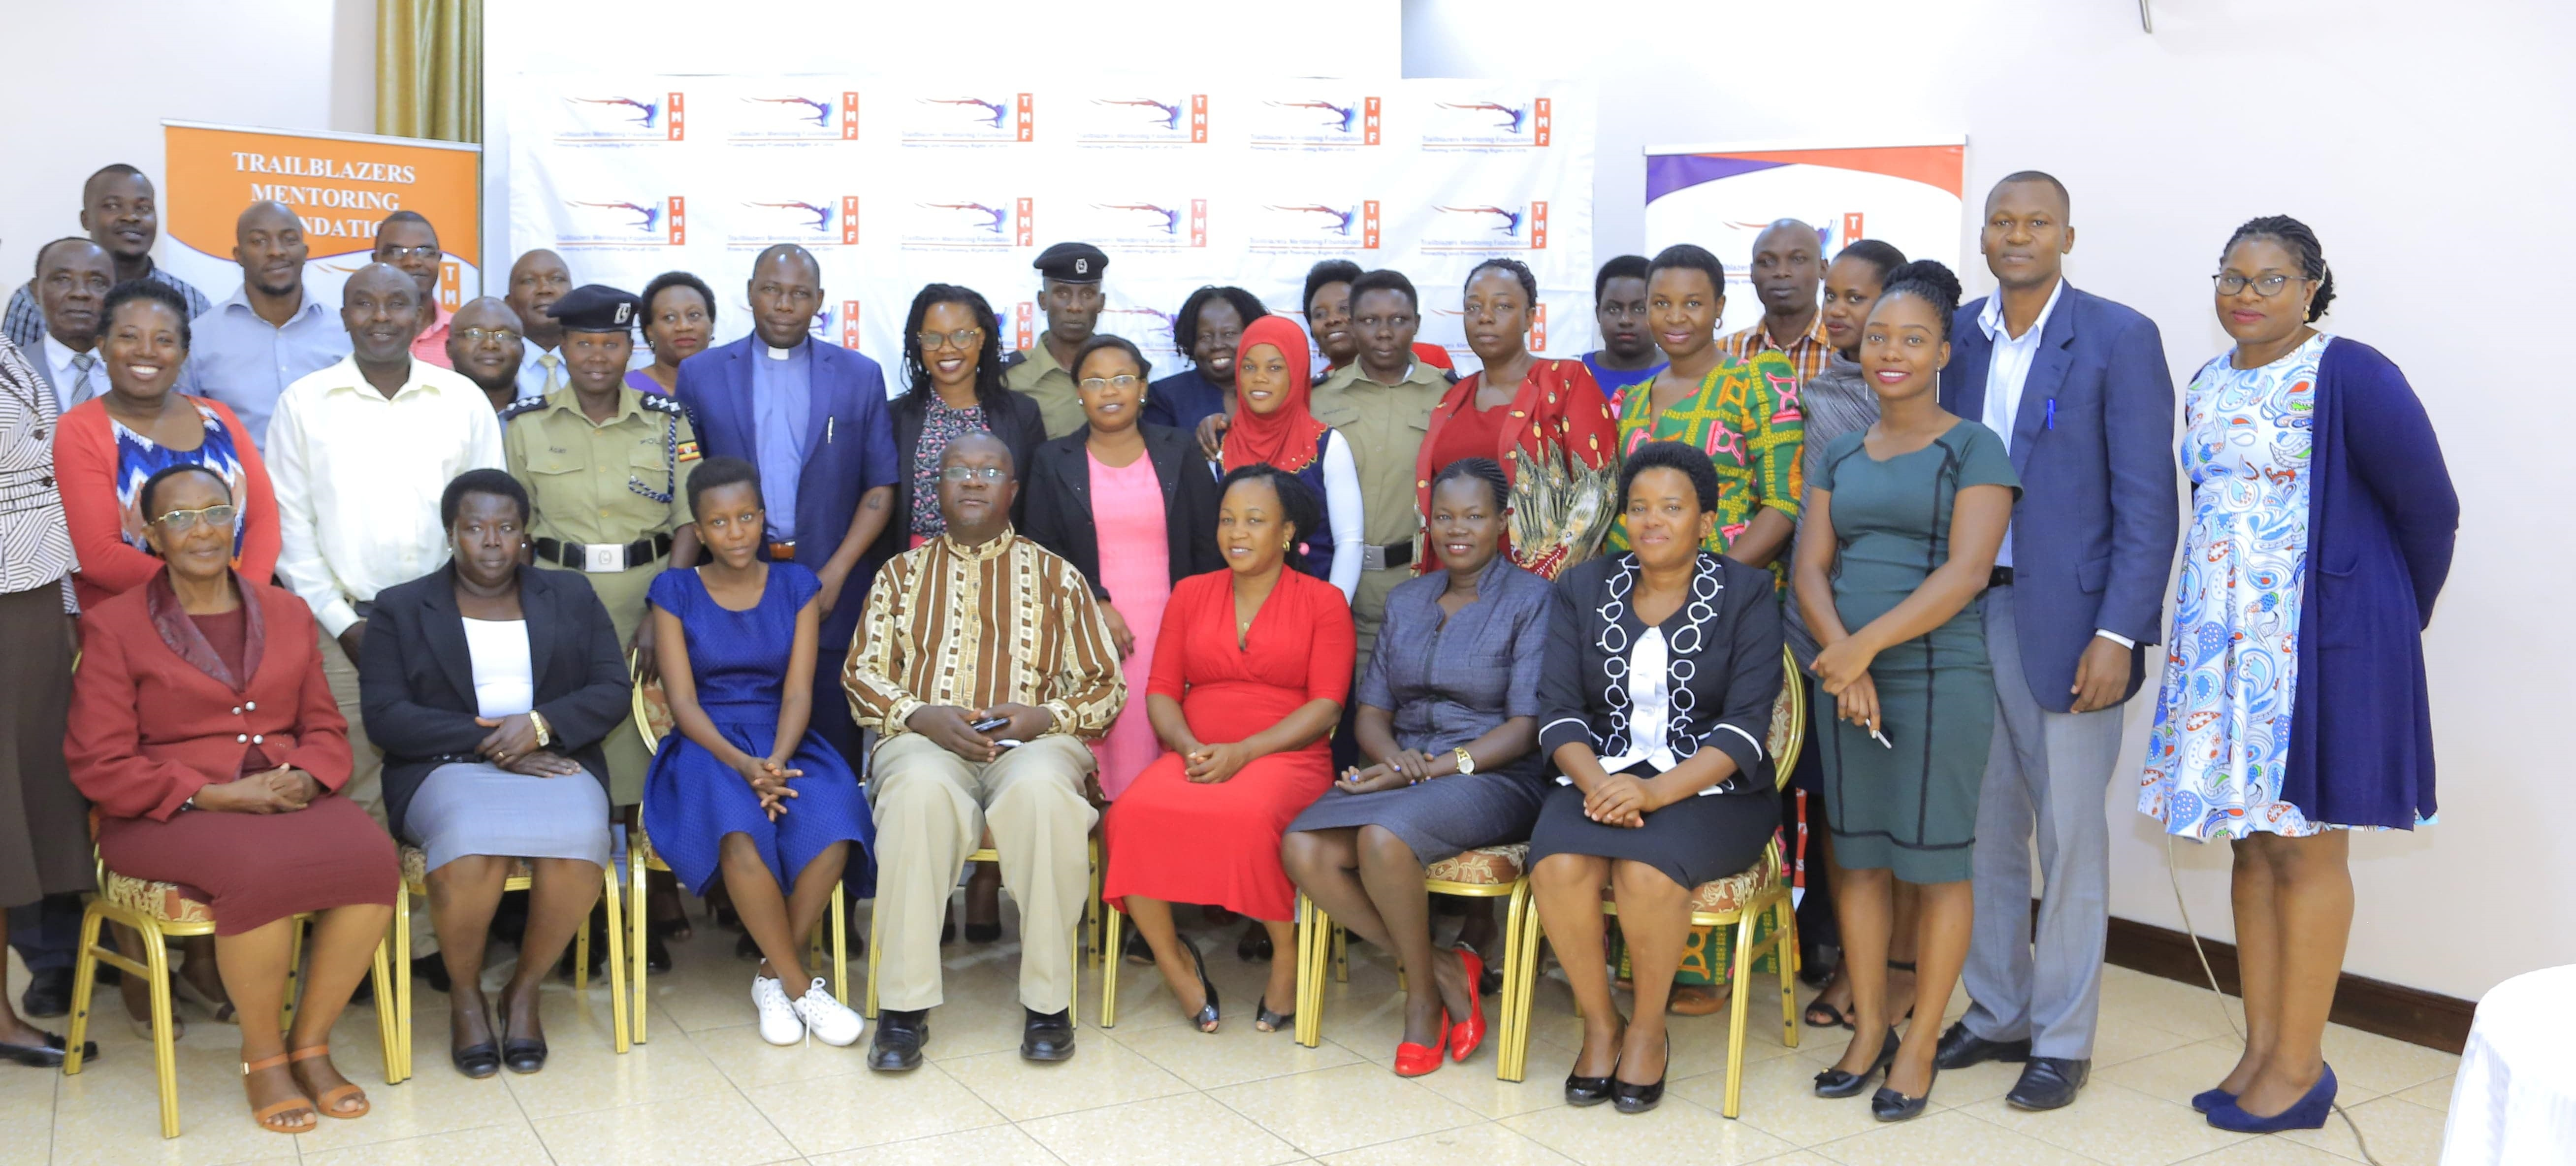 <p>We believe in working with stakeholders at all levels to make ending Child Marriage a Priority.</p>